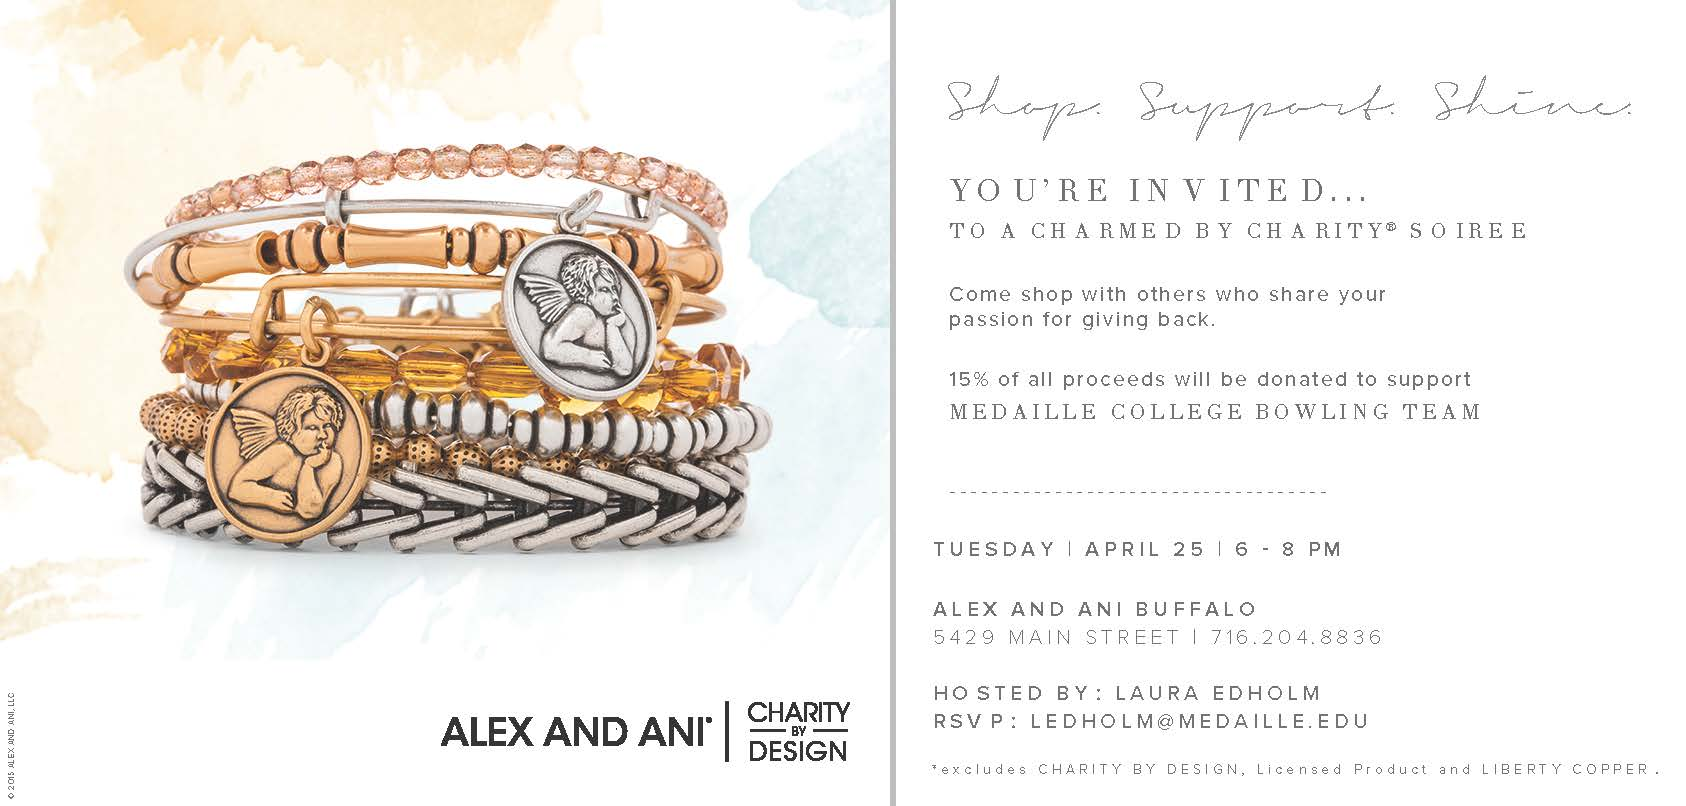 Alex and Ani flyer